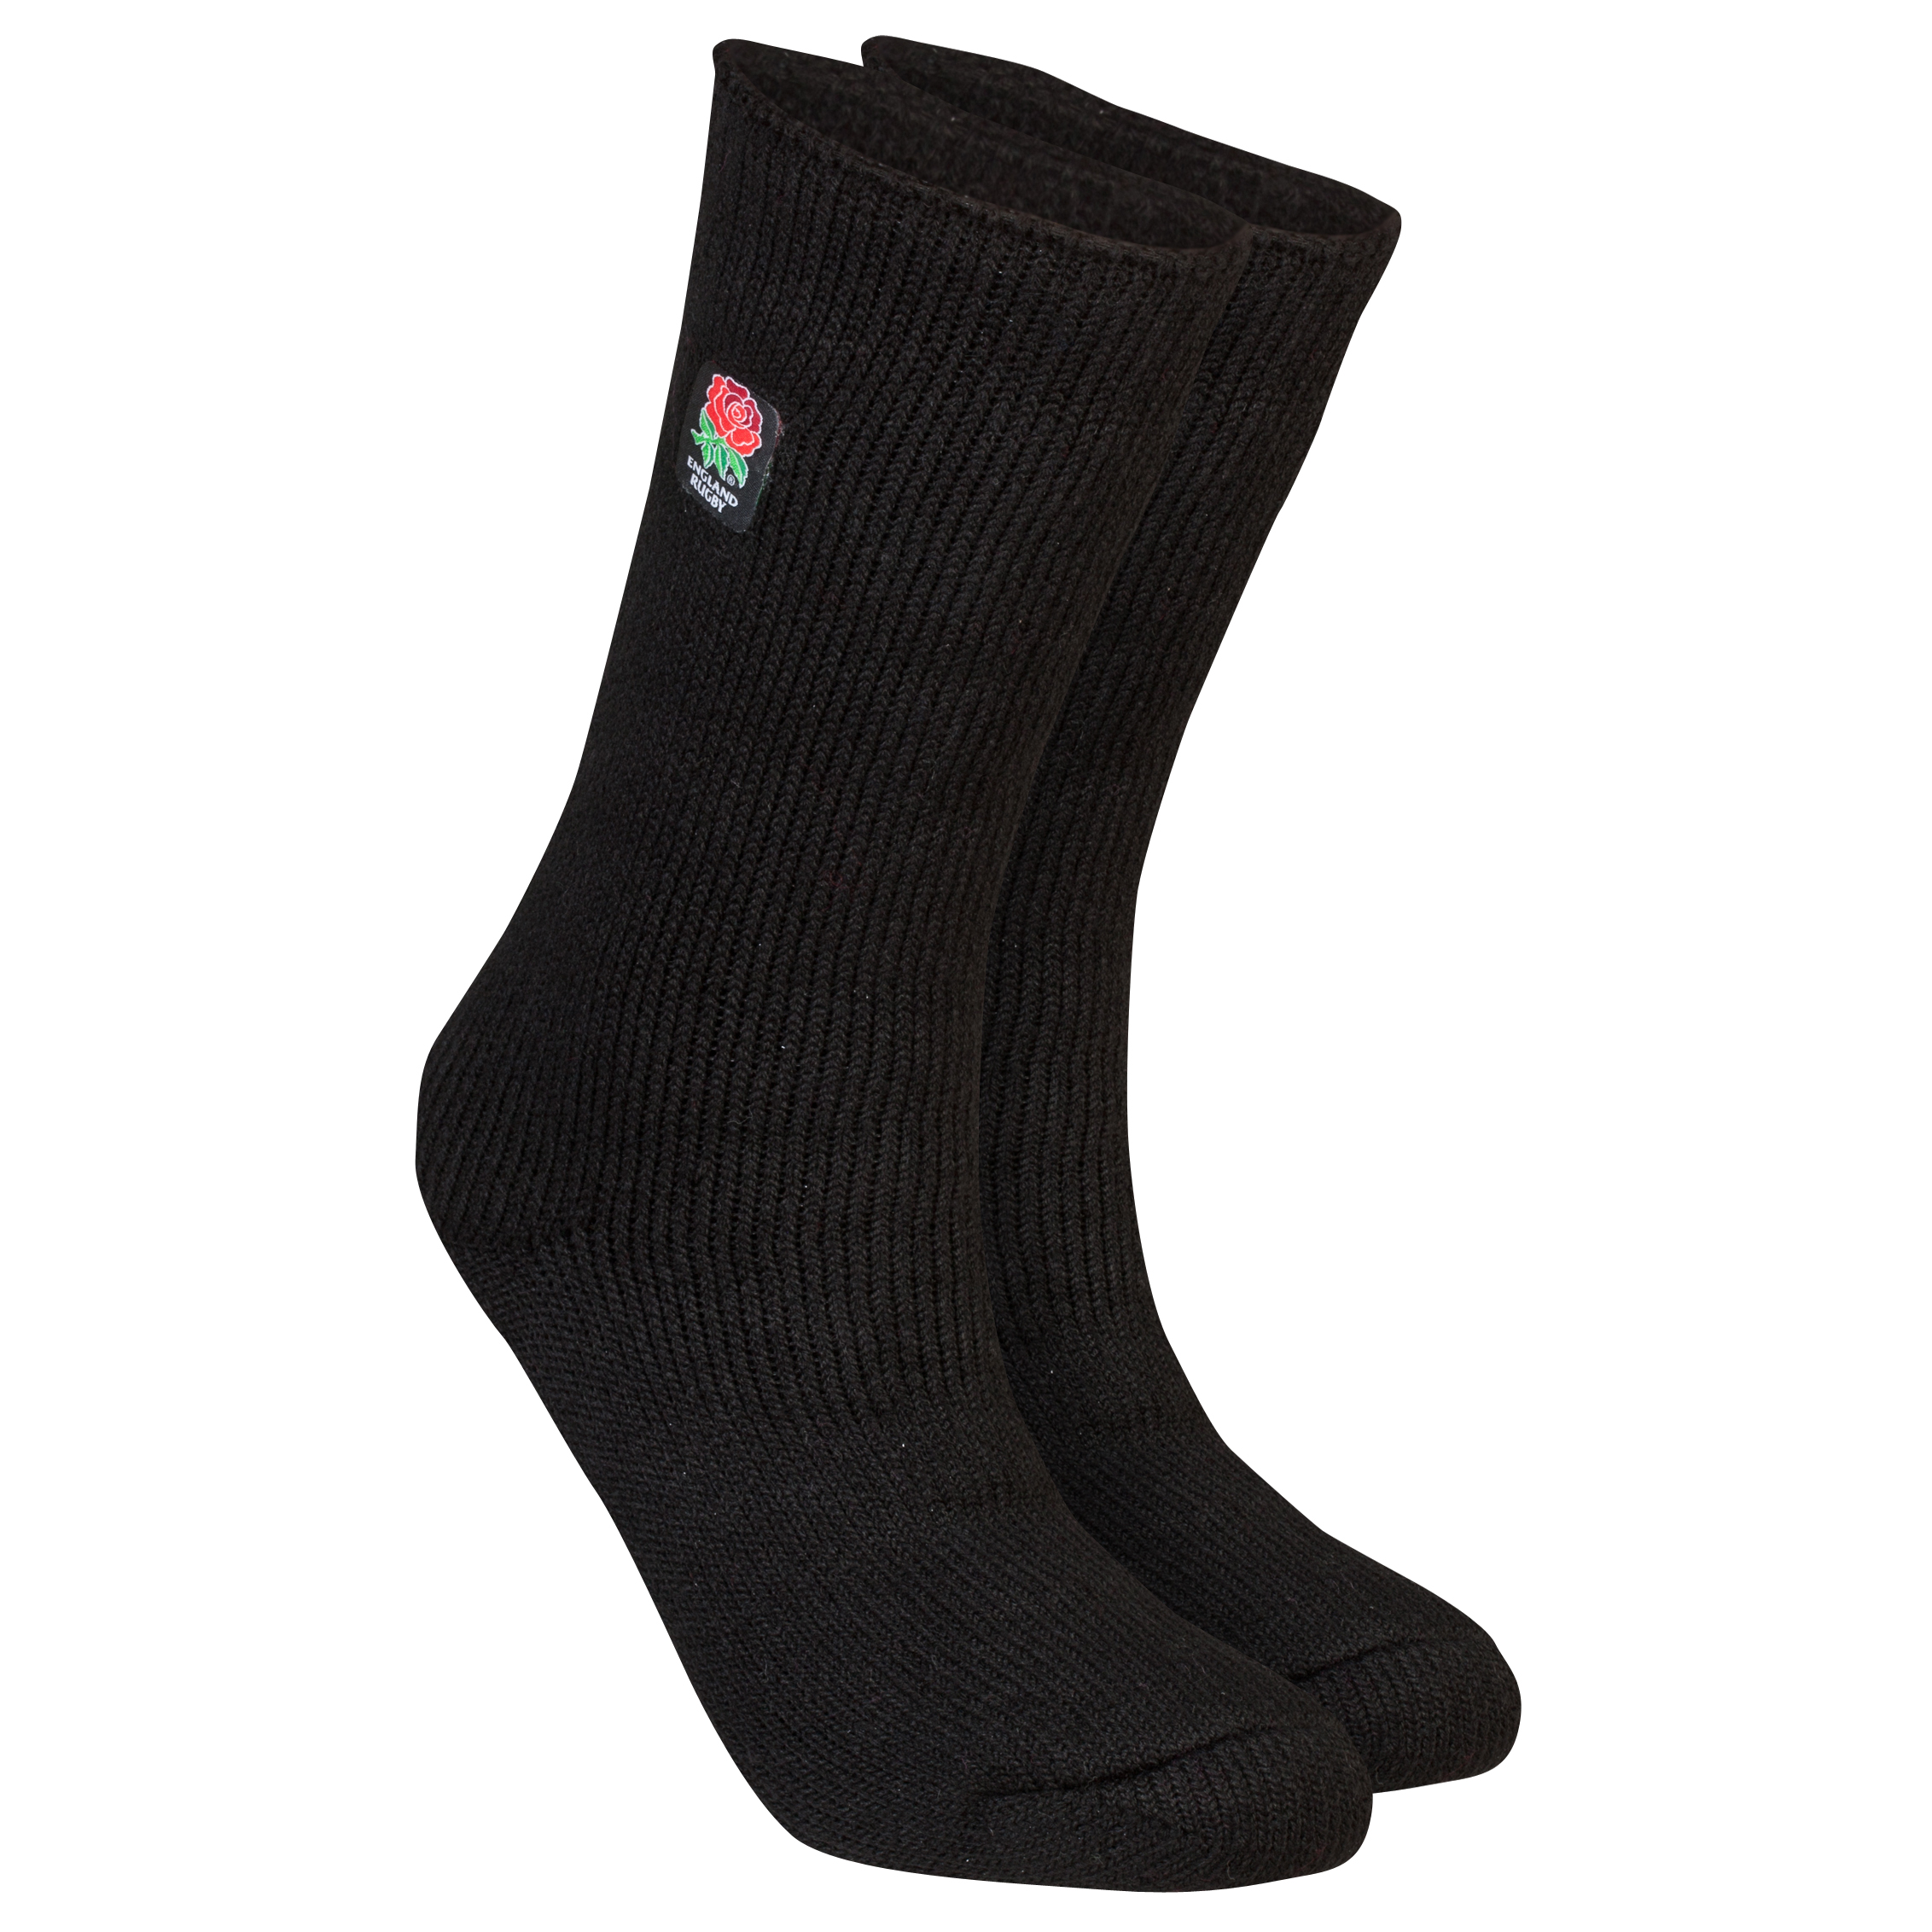 England Rugby Heat Holders Thermal Socks - Black